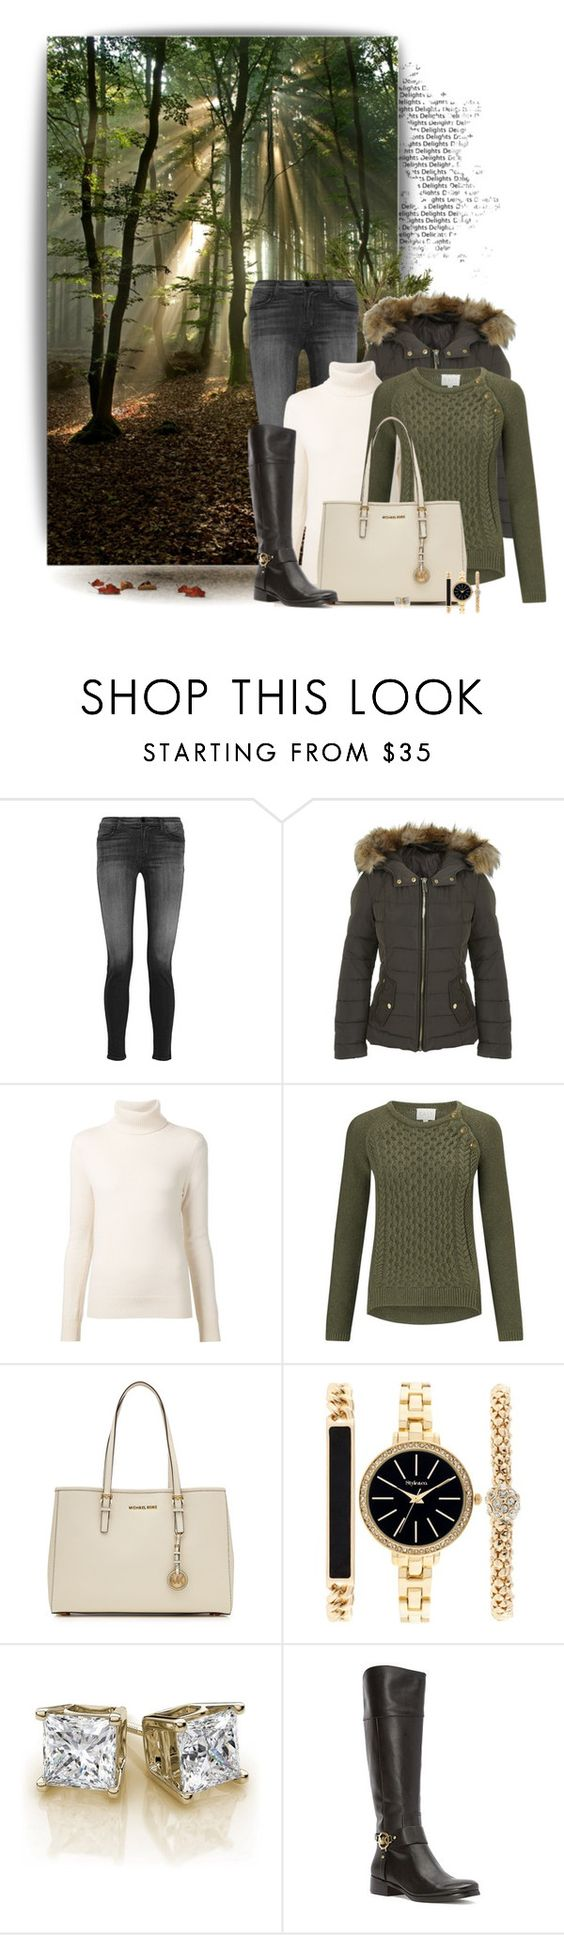 """Are We Out of the Woods"" by jewhite76 on Polyvore featuring J Brand, Miss Selfridge, Chloé, EAST, MICHAEL Michael Kors and Style & Co."